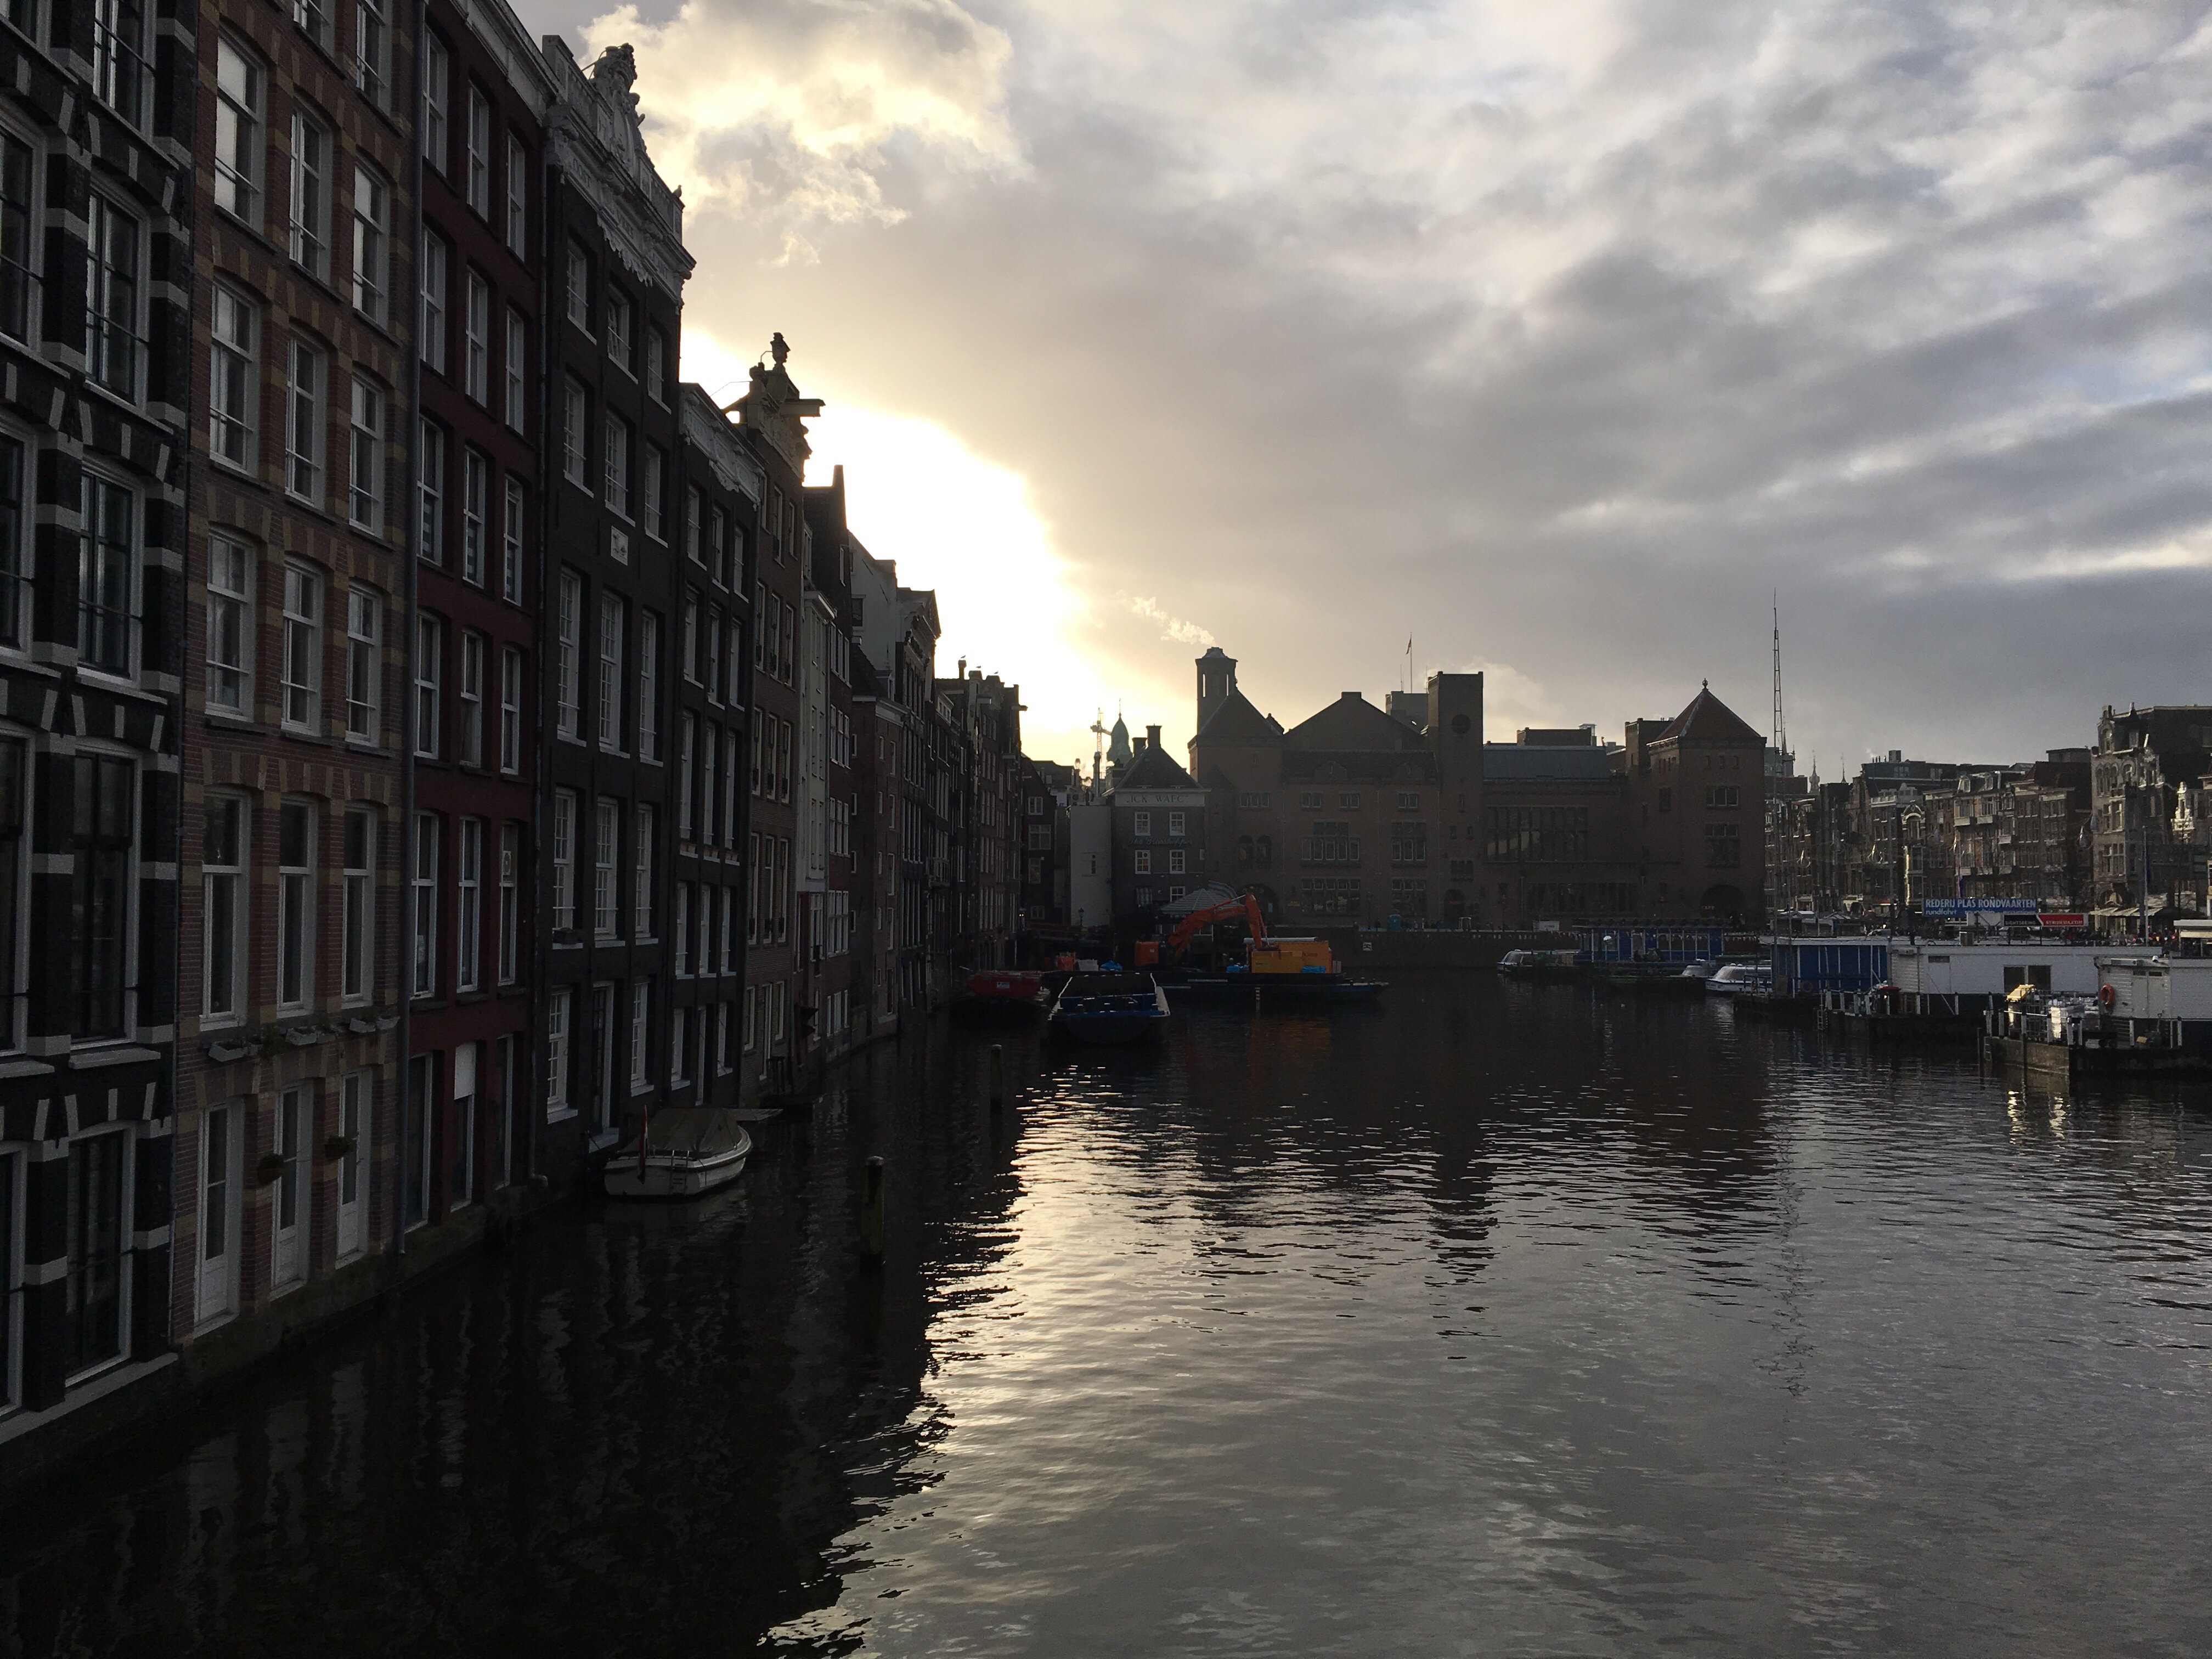 Amsterdam canal with row of houses on the left and the sun setting behind houses in the middle